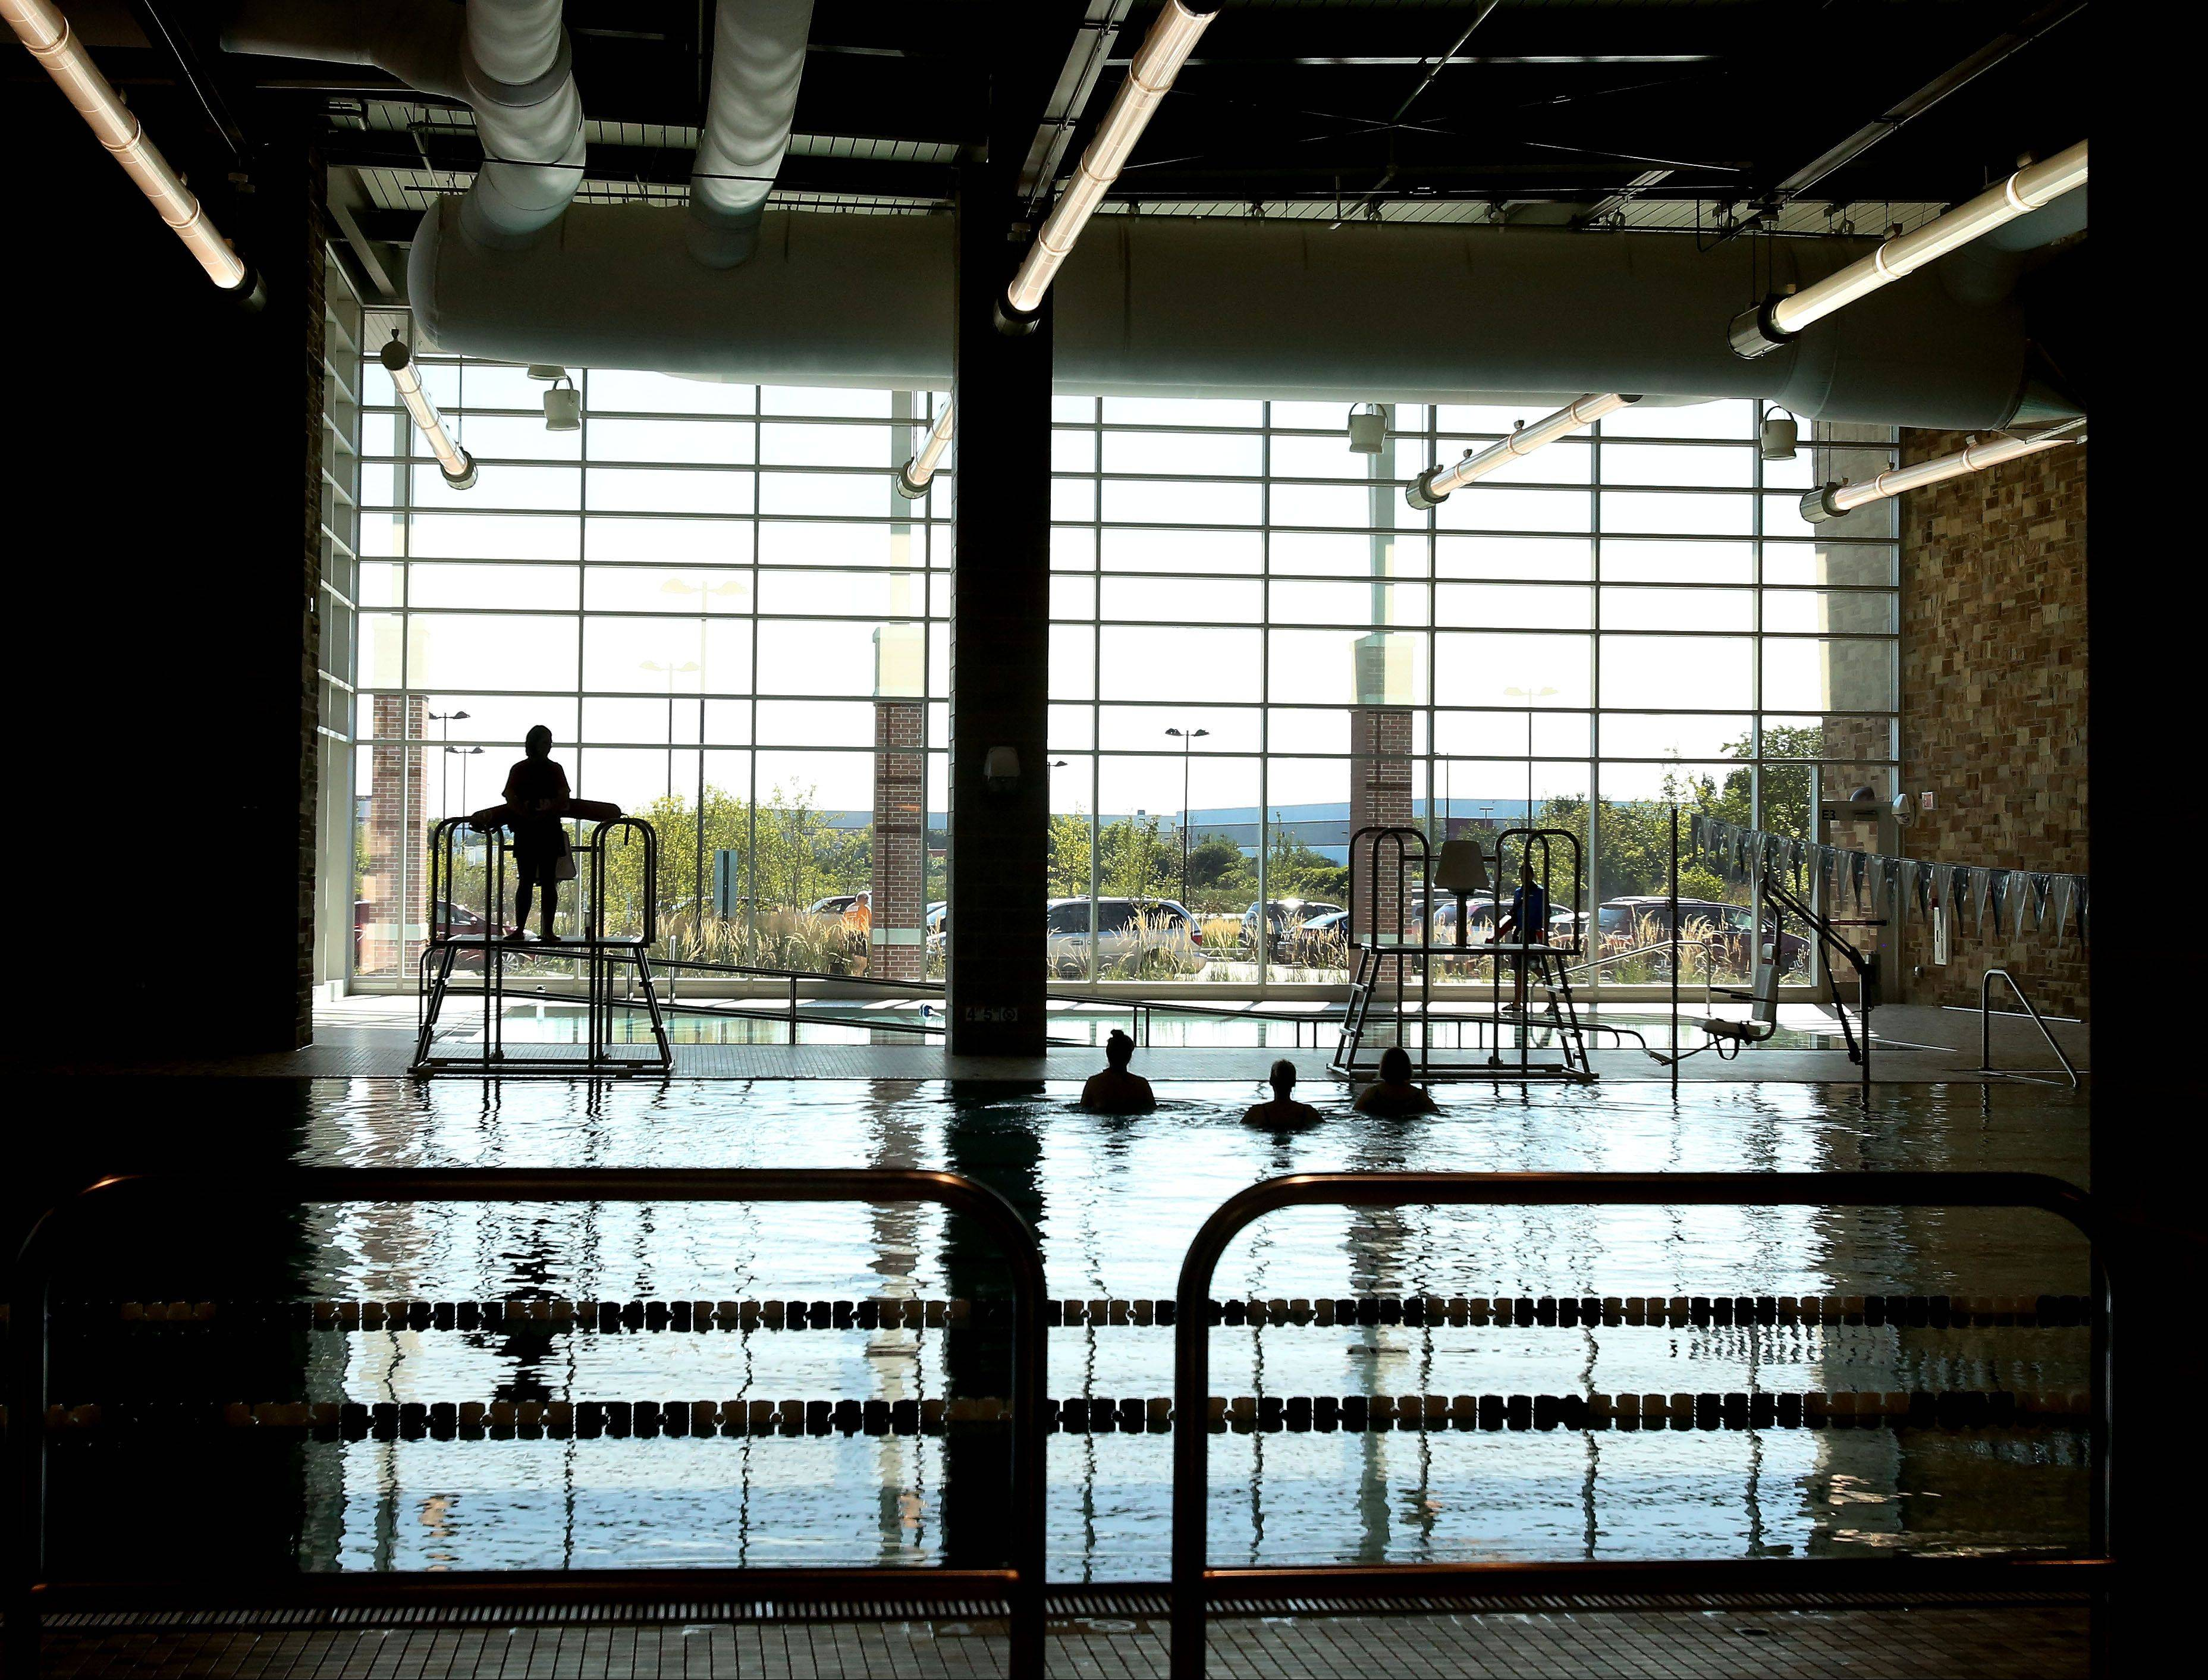 A 8-lane, 25-yard swimming pool is one of the features of the Fountain View Recreation Center in Carol Stream.